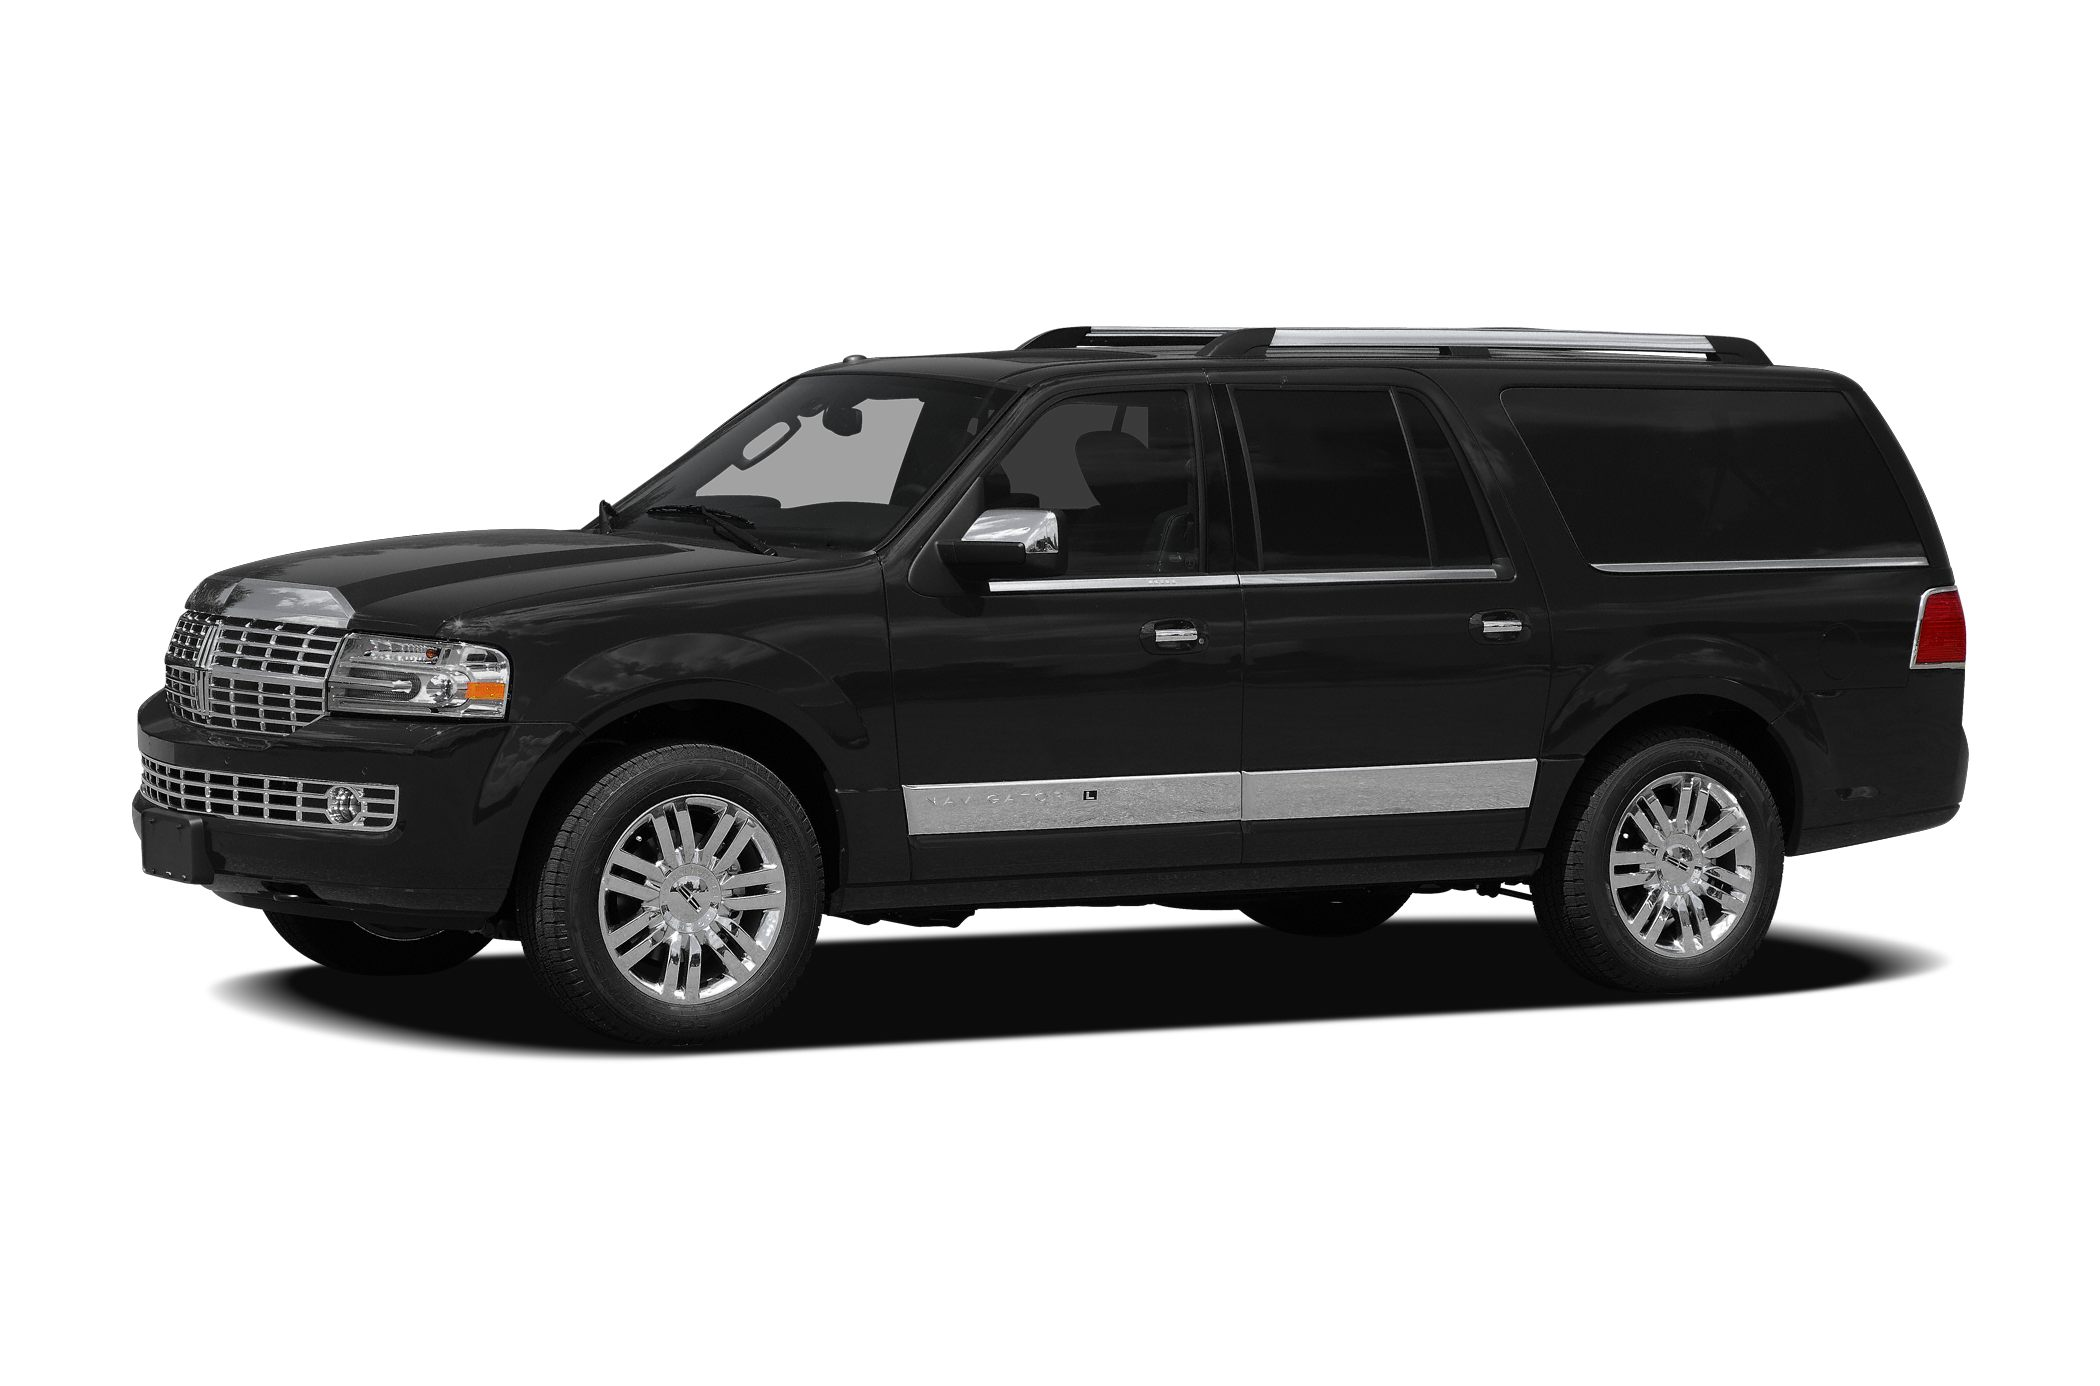 2008 Lincoln Navigator Base Only 80909 Miles This Lincoln Navigator boasts a Gas V8 54L330 eng